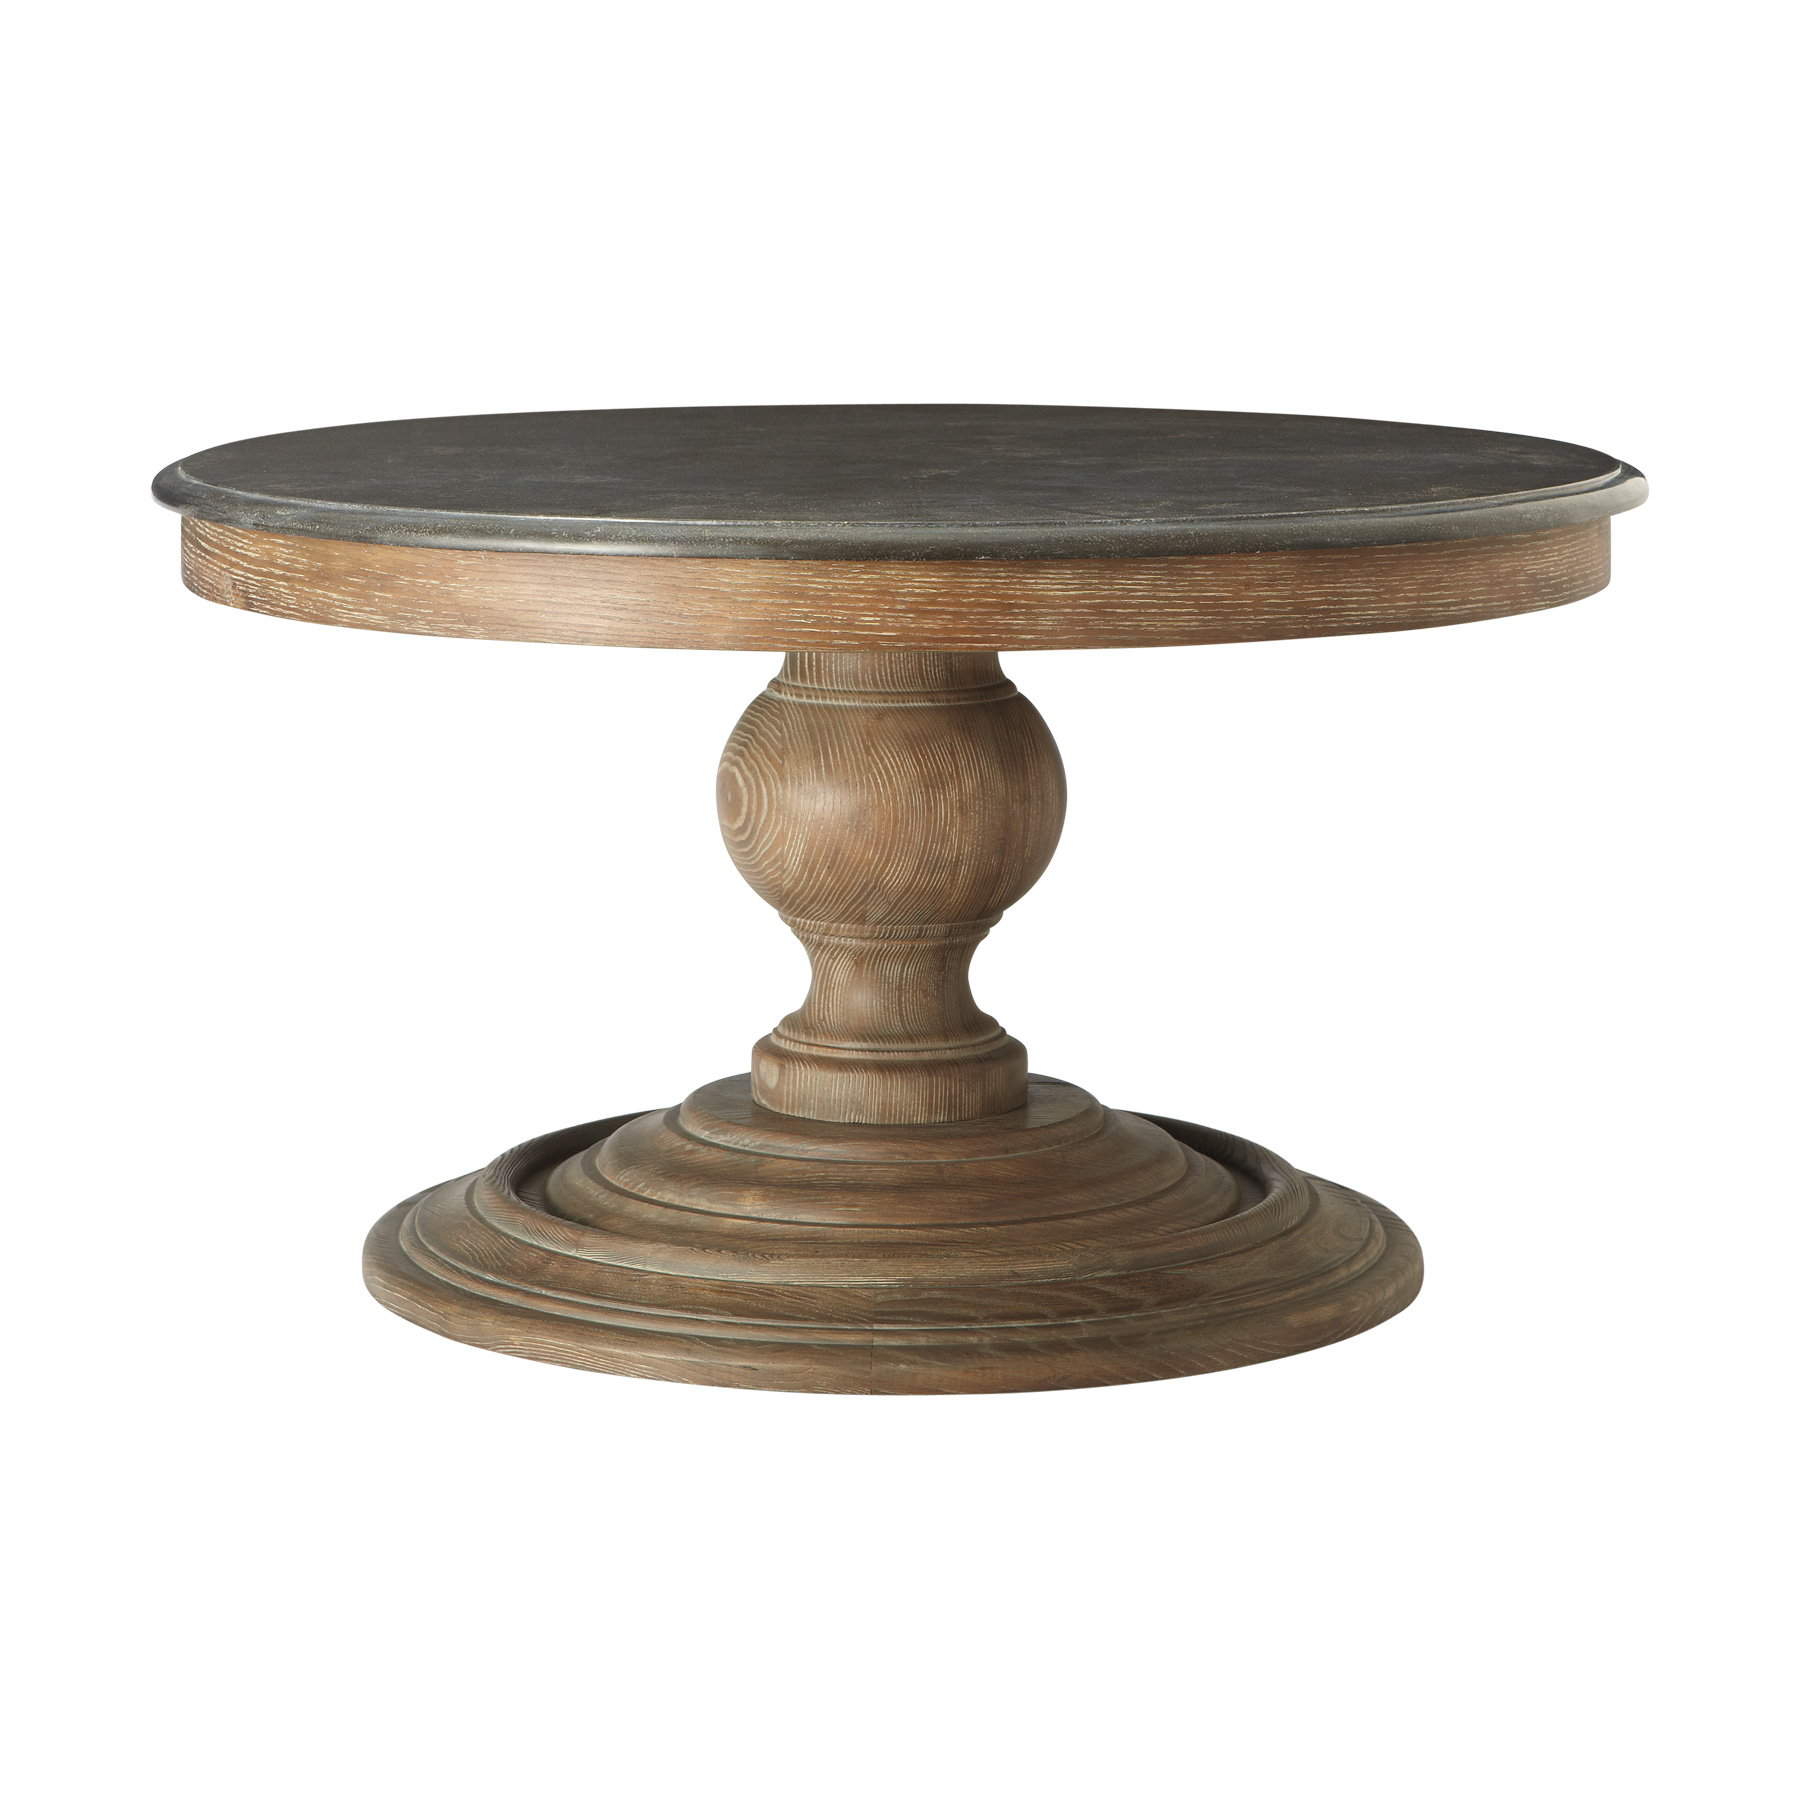 Piero 36 Inch Round Coffee Table Classic Round Wooden Lacquered Coffee Table 36 Round Coffee Table 36 In Round Table (Image 7 of 10)